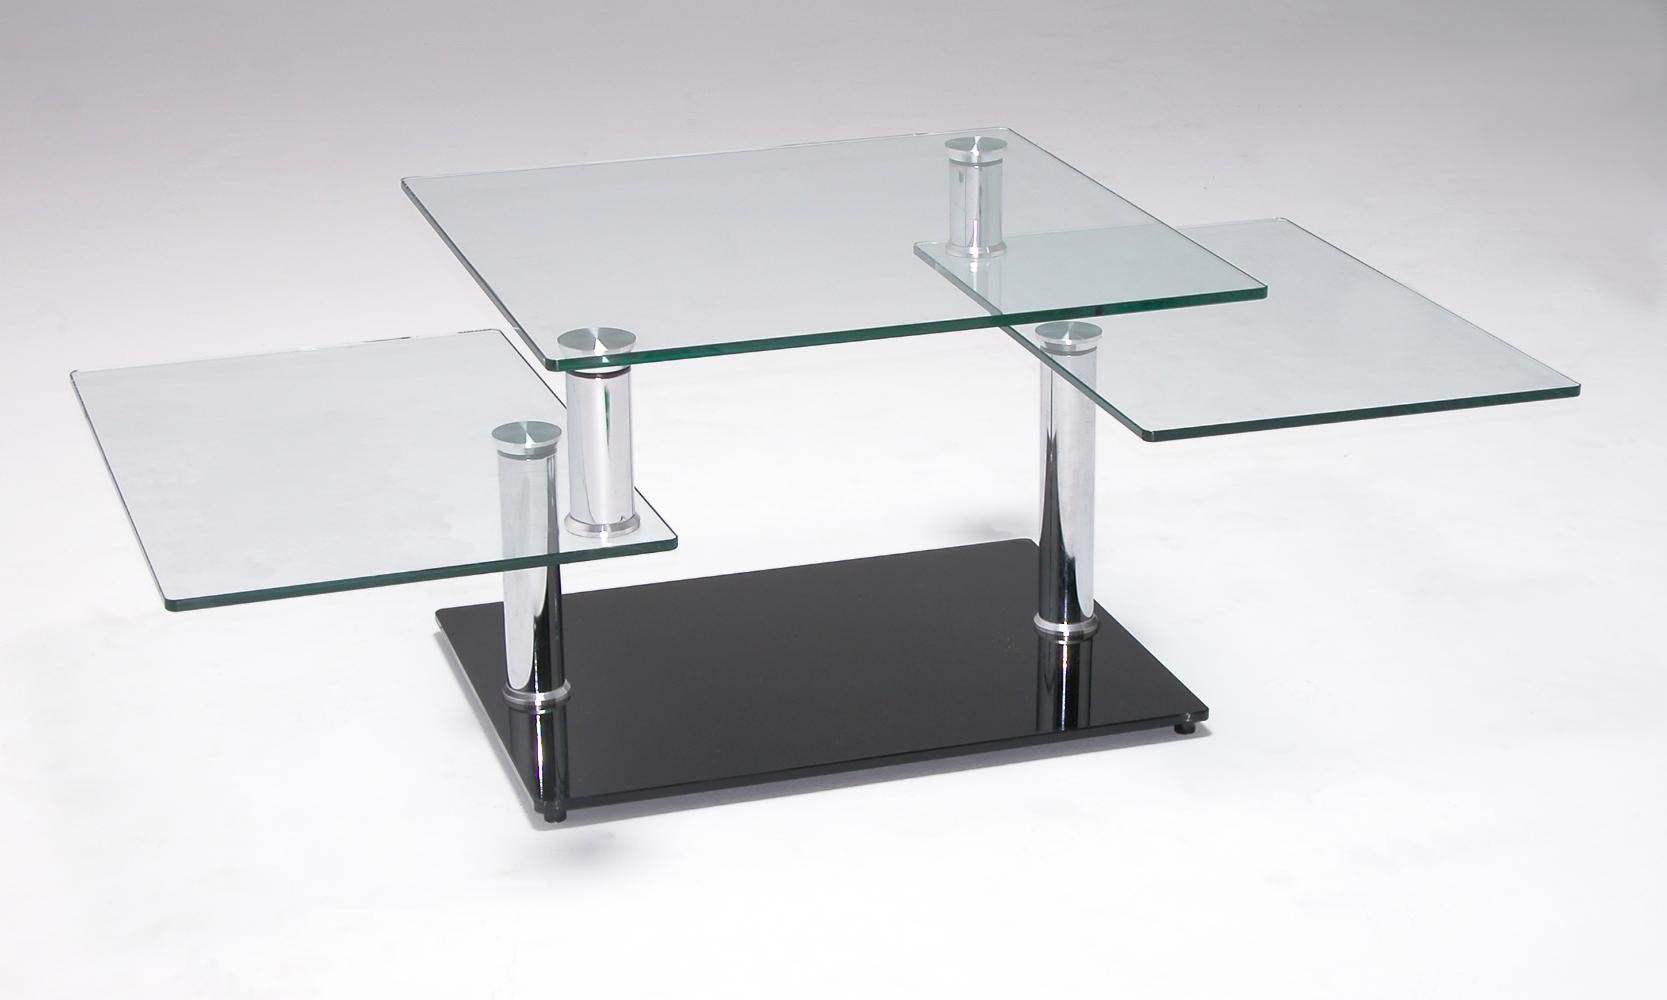 Folding glass coffee table coffee table design ideas Designer glass coffee tables